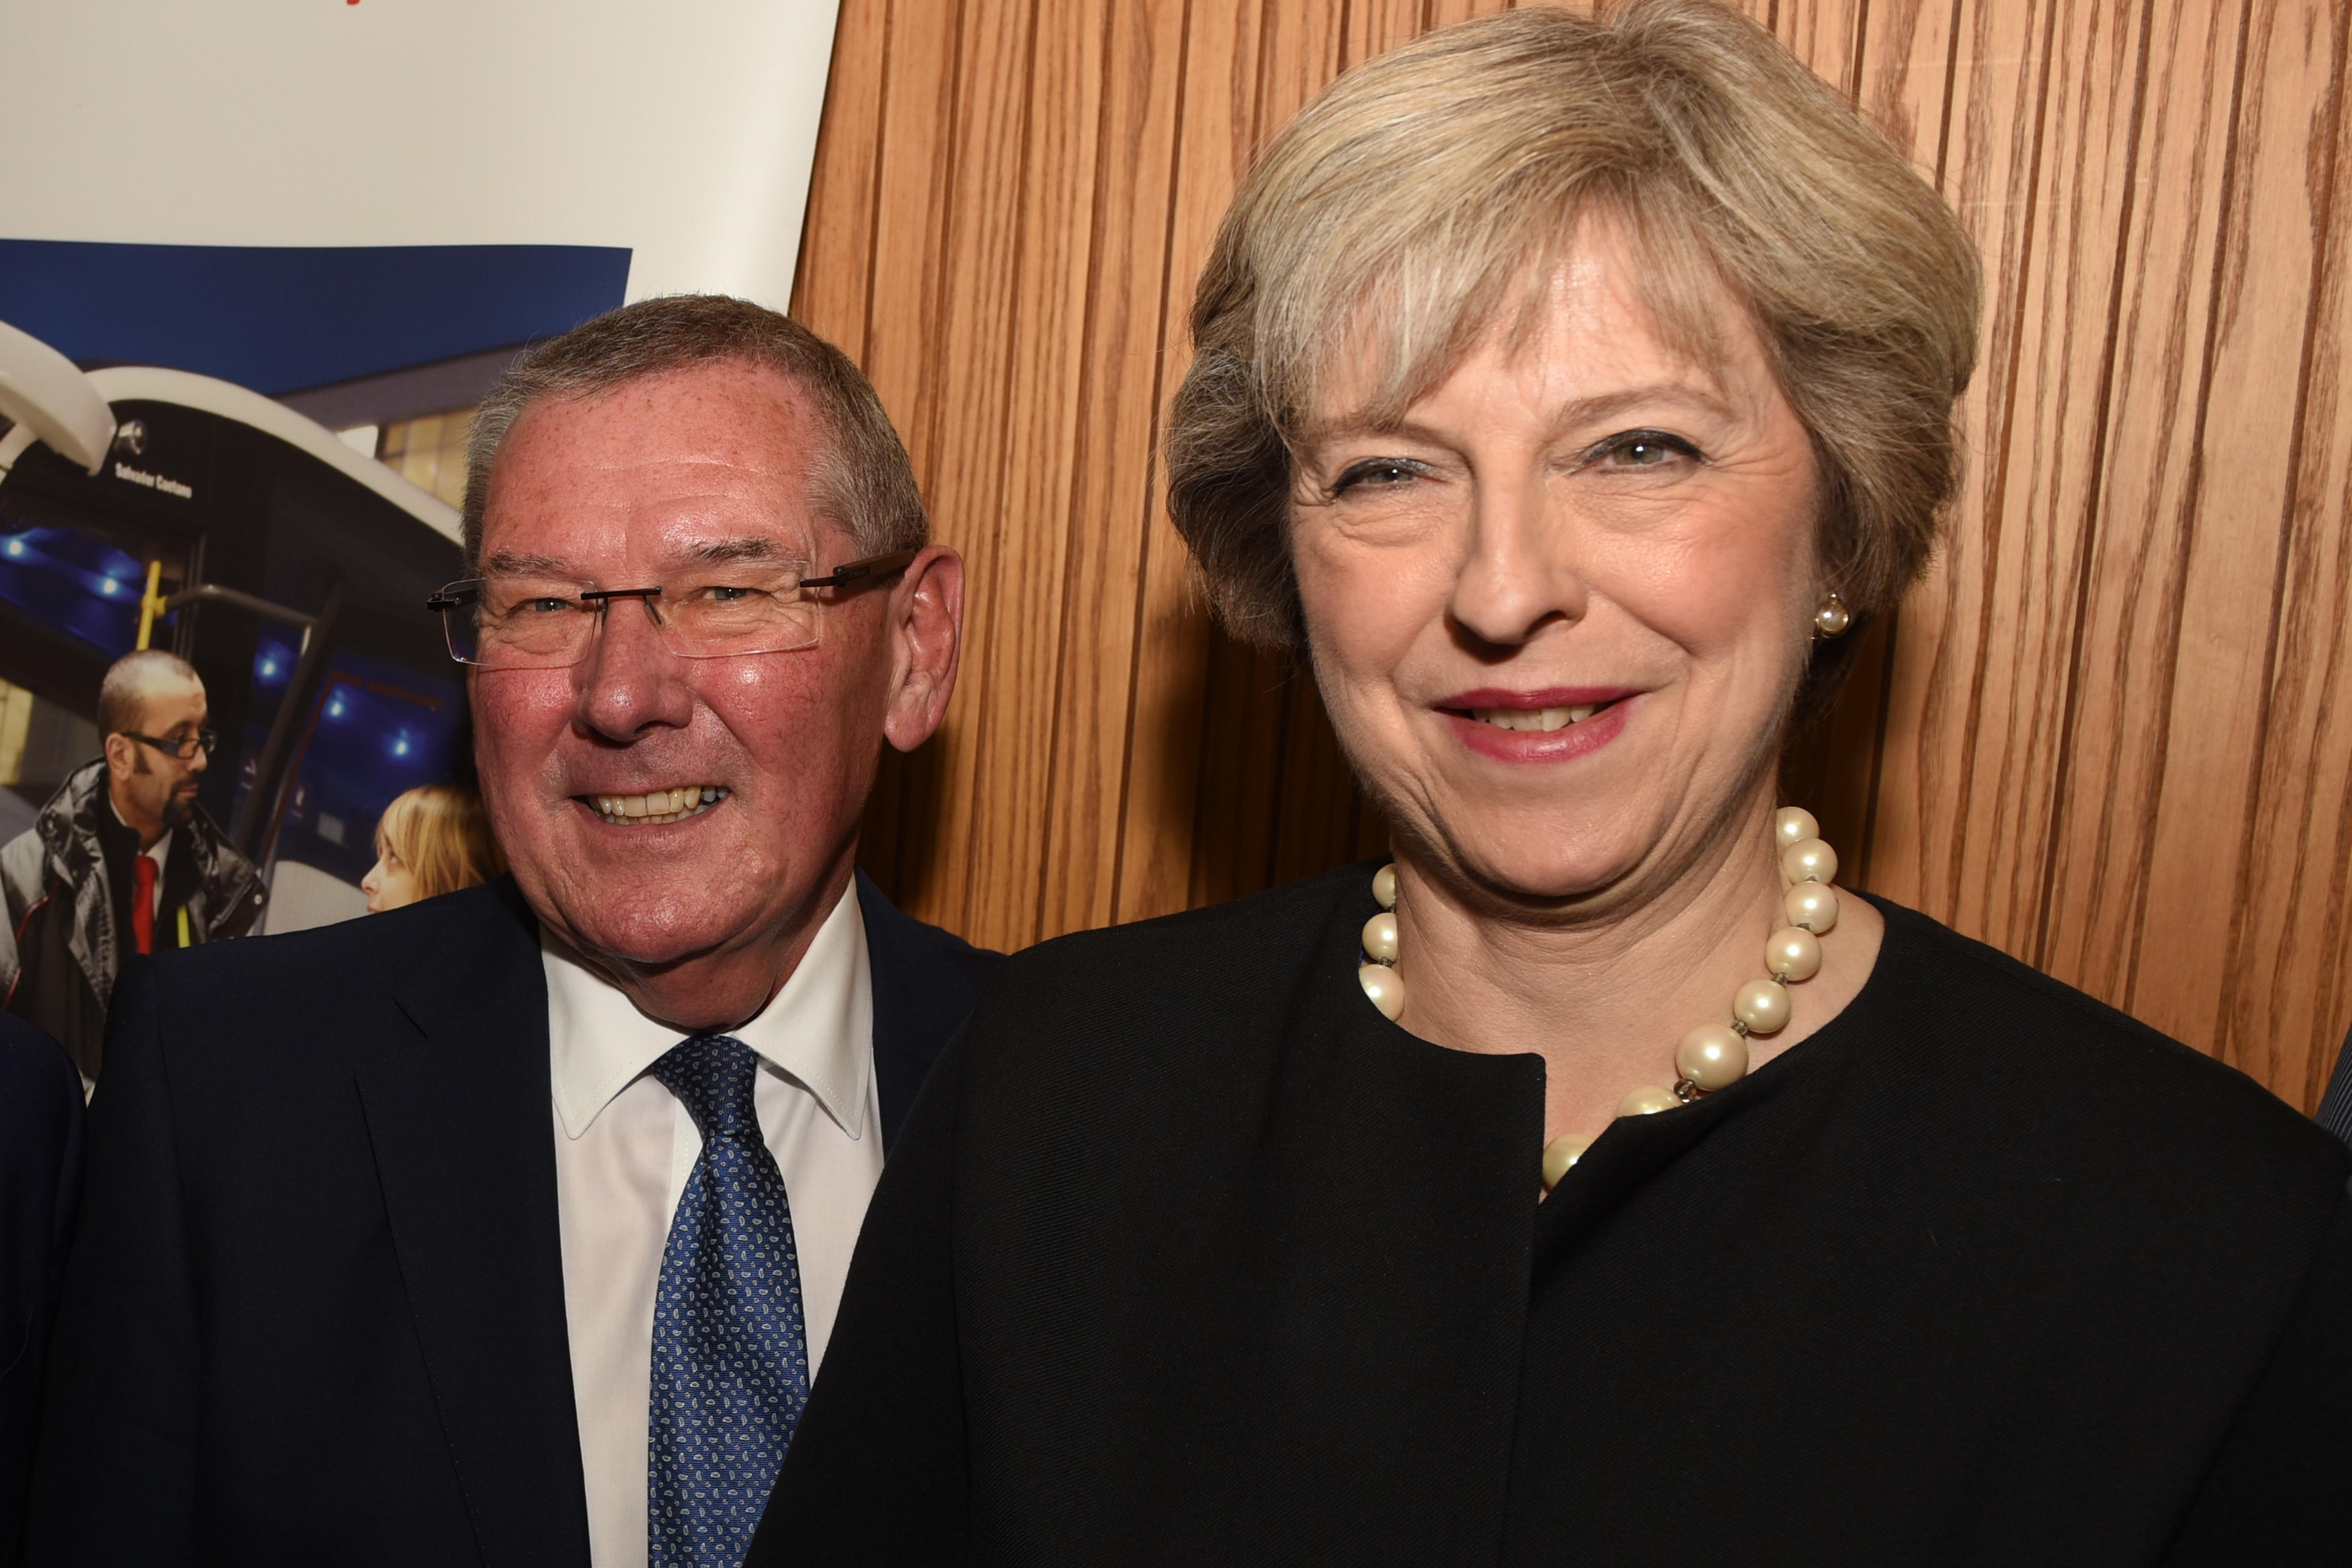 Prime Minister welcomed to region by combined authority chair